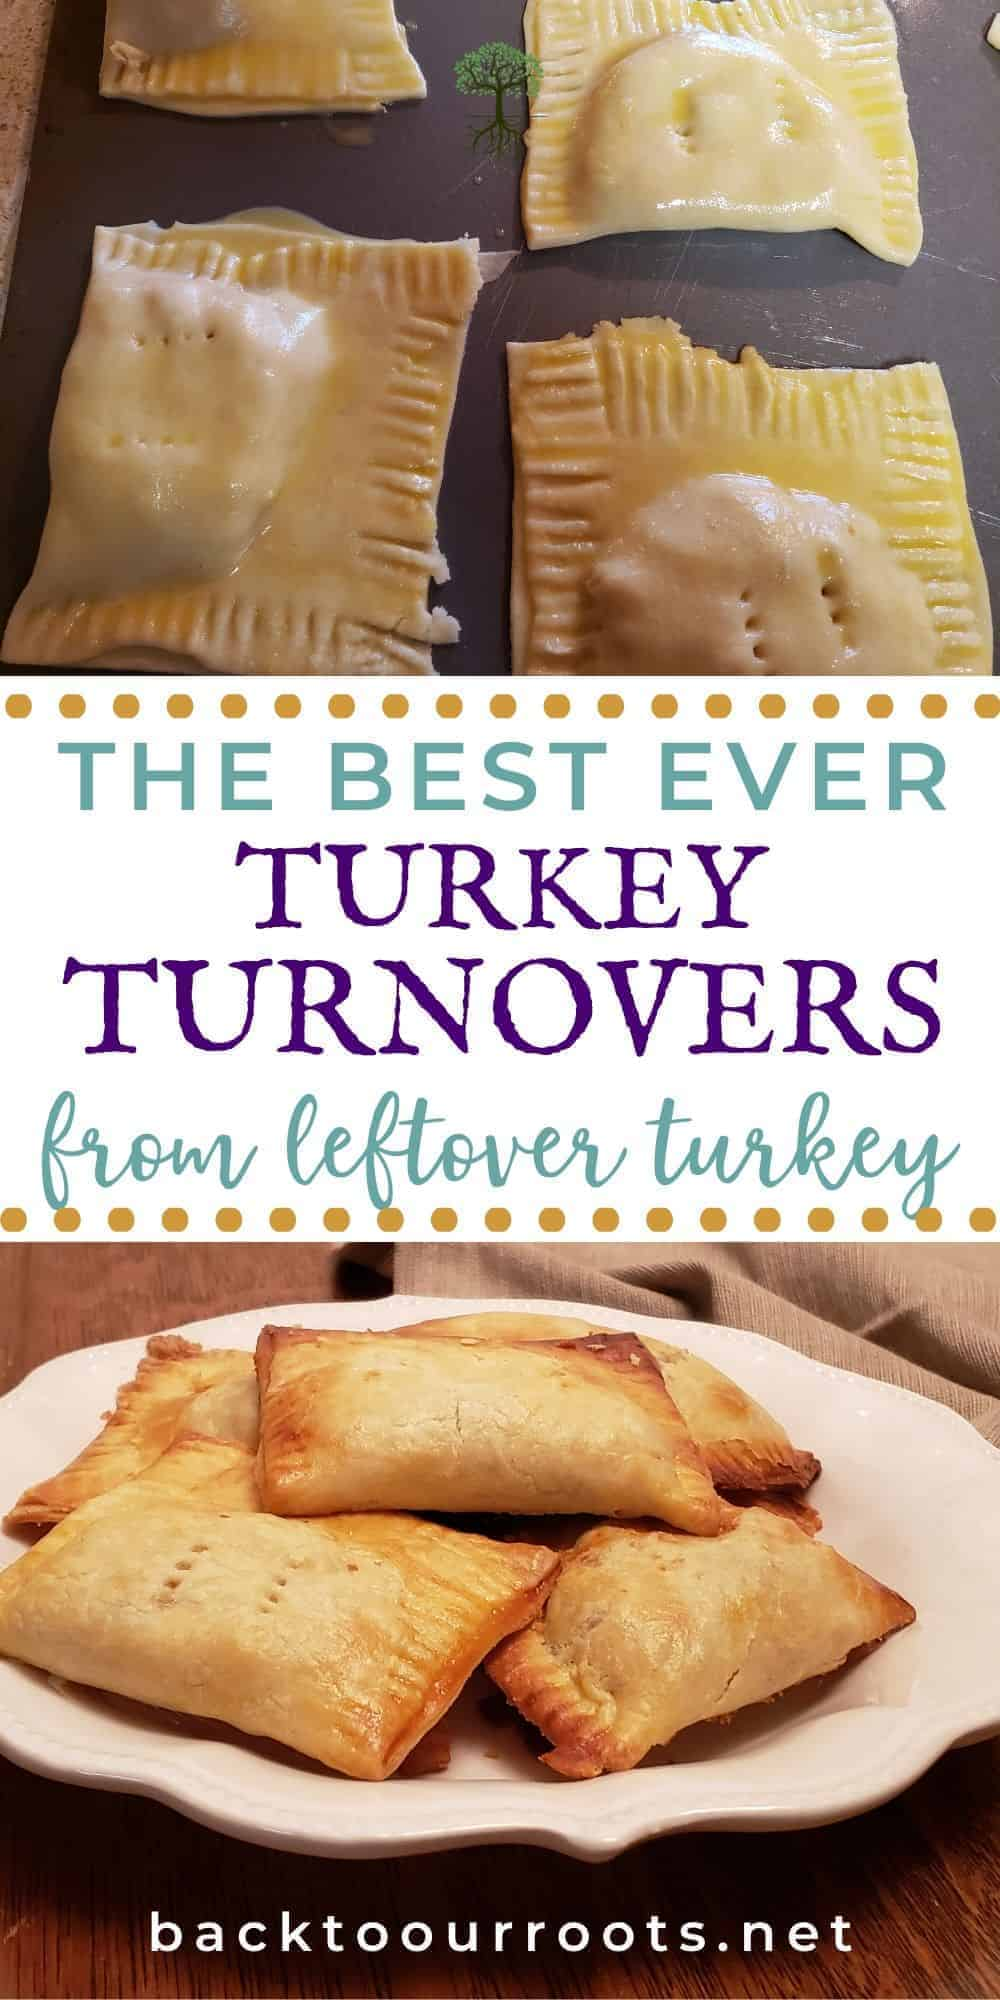 Leftover Turkey Turnovers